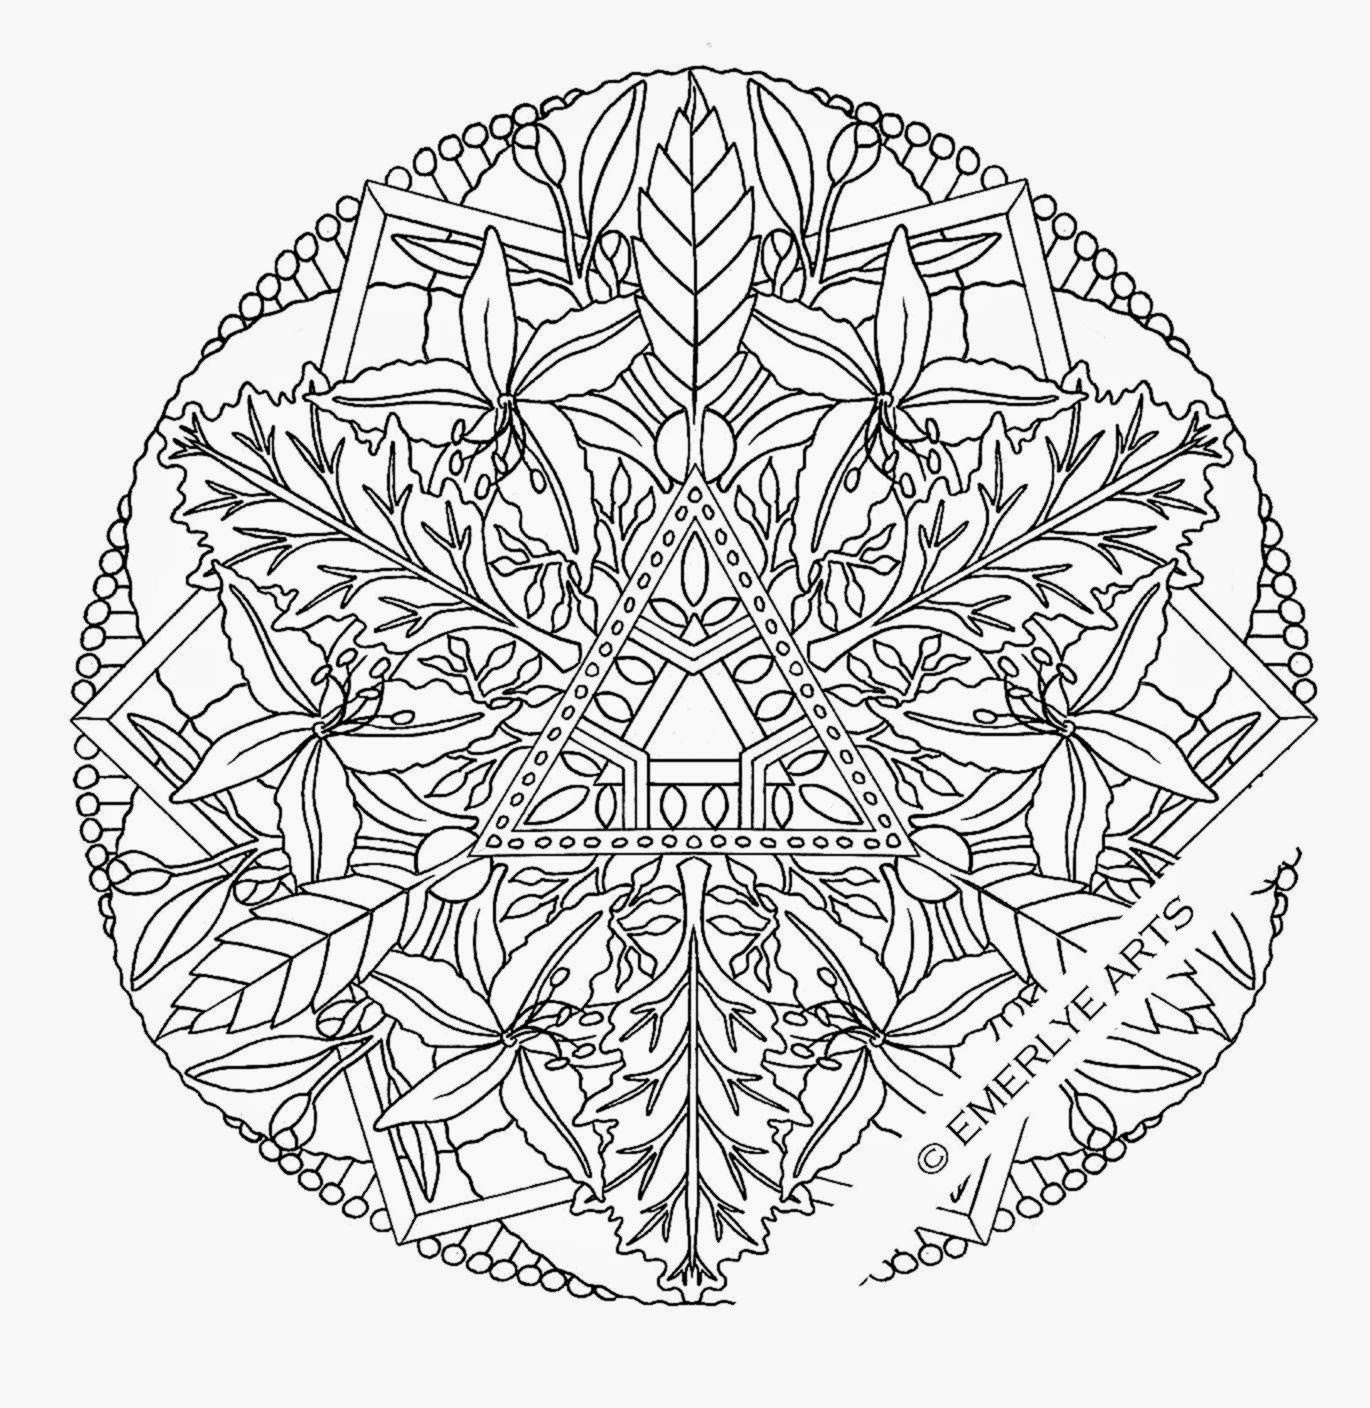 coloring pages for adults free - coloring sheets for adults free coloring sheet